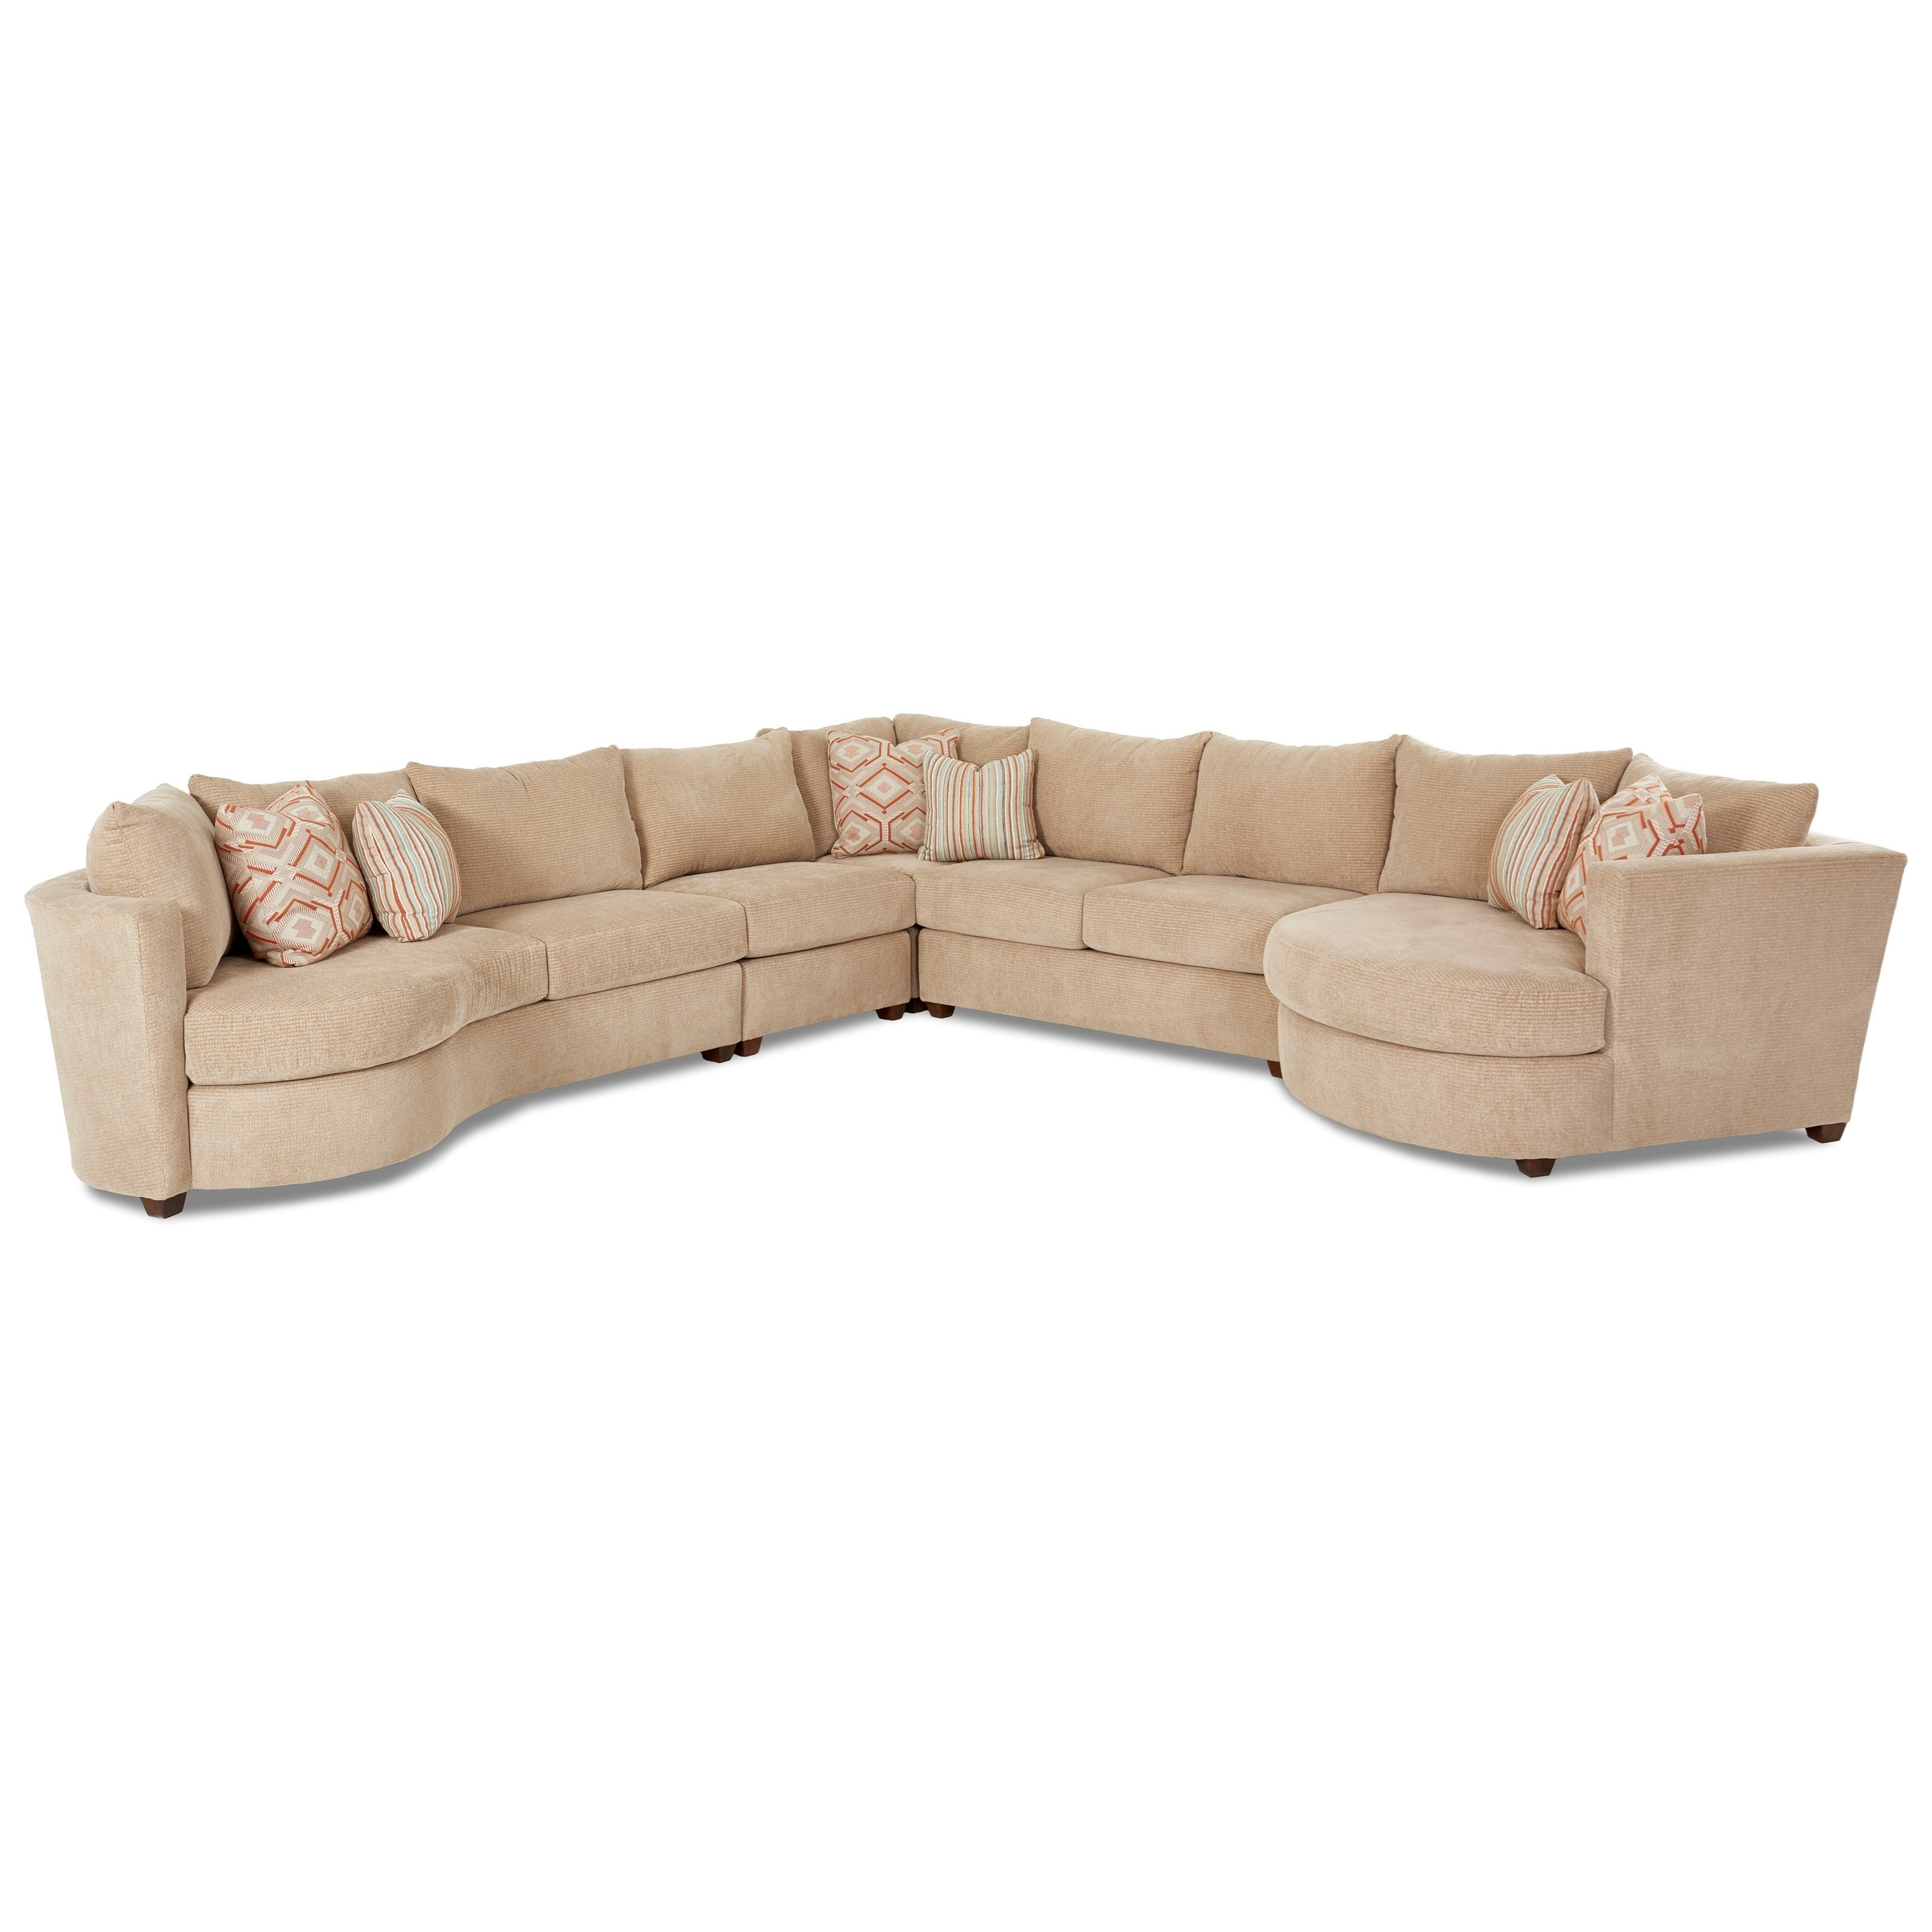 Klaussner LIA Sectional with Right Arm Facing Cuddler - Item Number: K85200L LS+AC+CORN+ALS+R CUDD